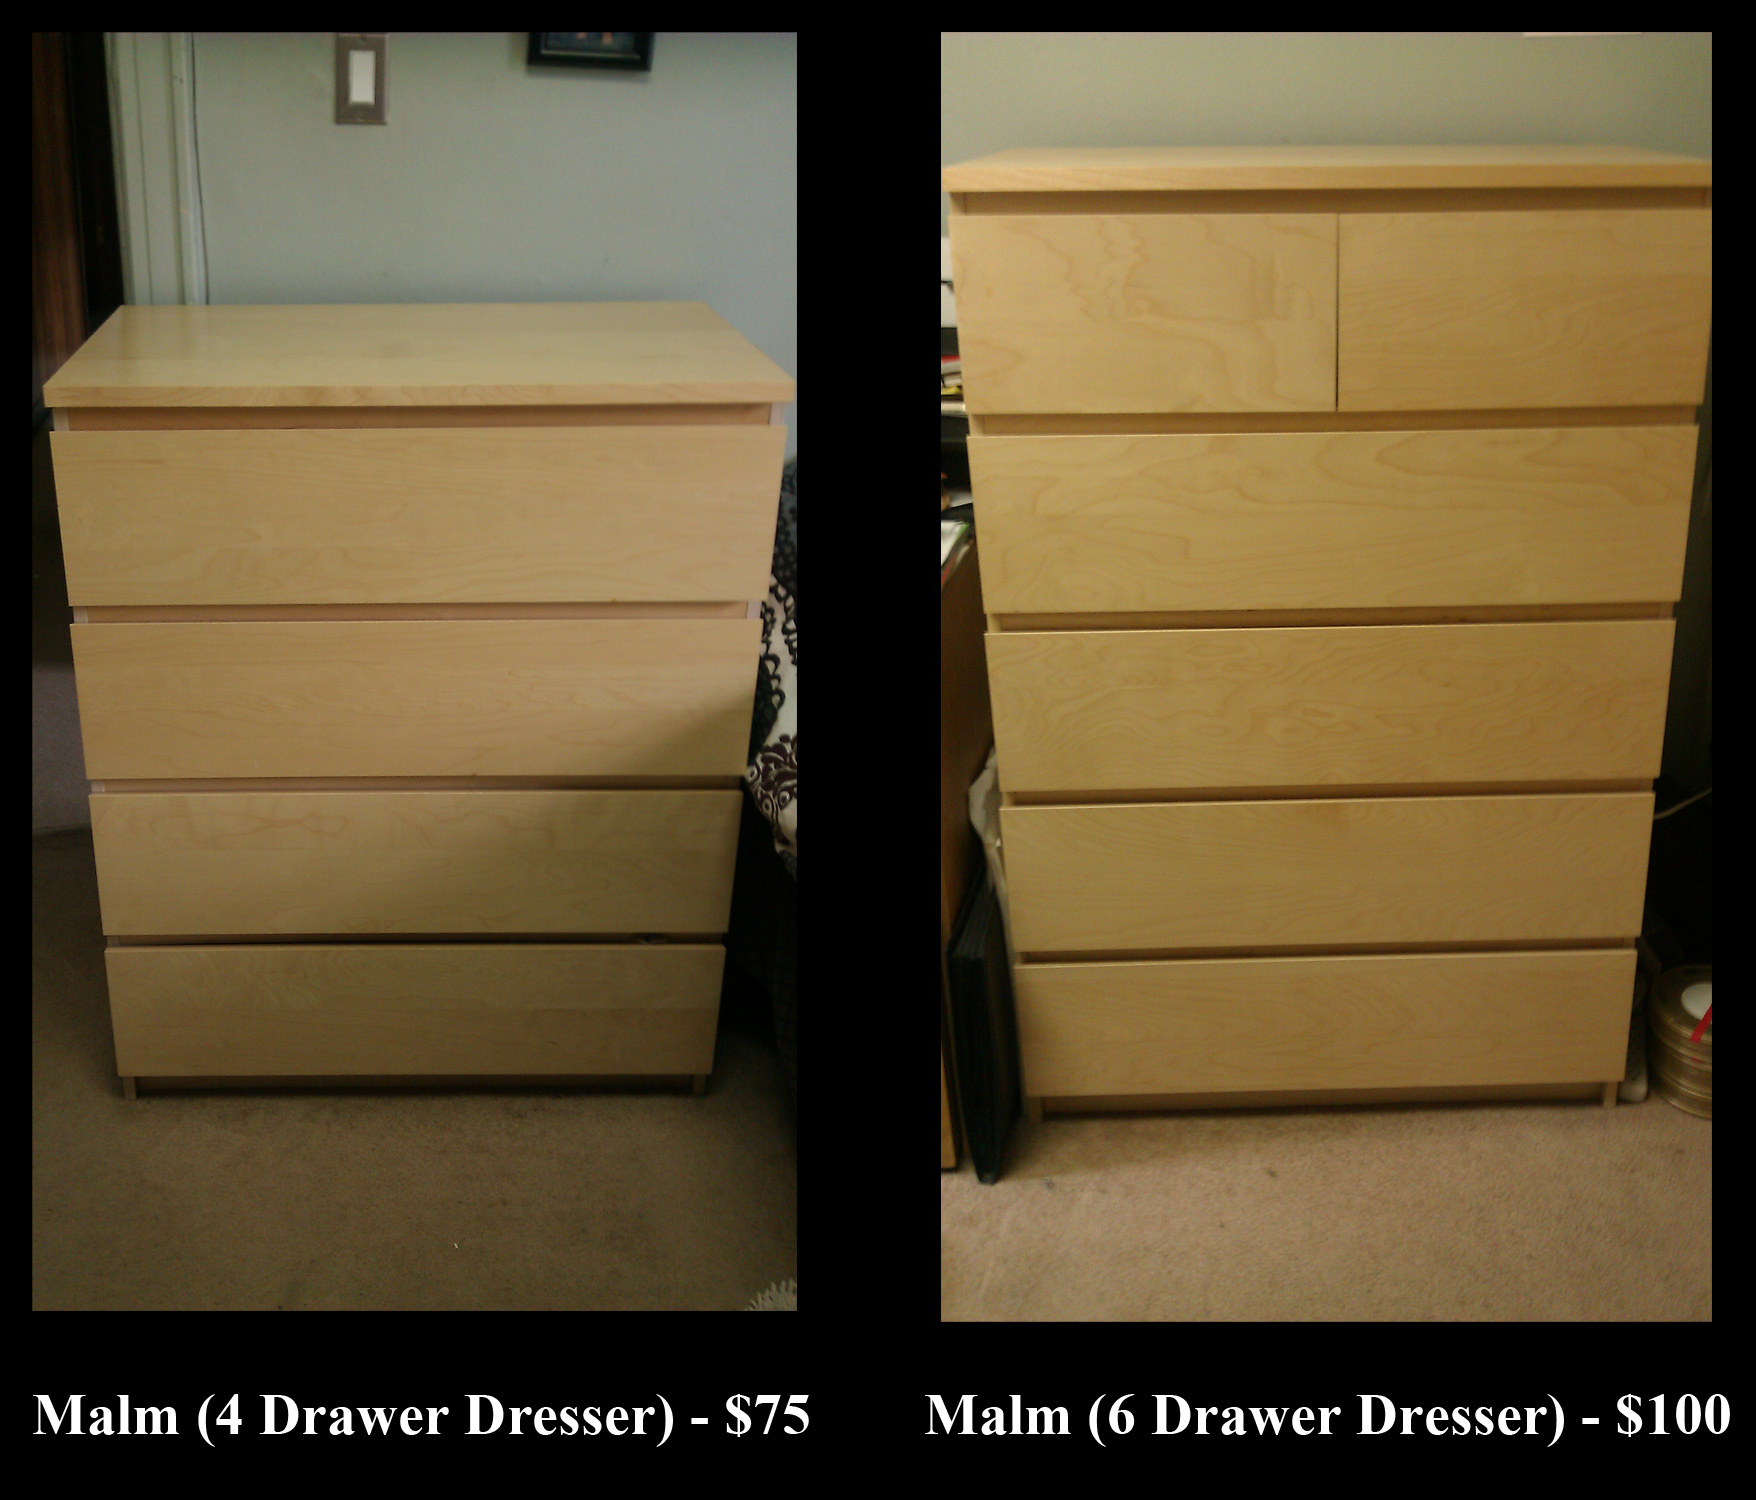 Malm 6 Drawer Dresser With Malm 4 Drawer Dresser